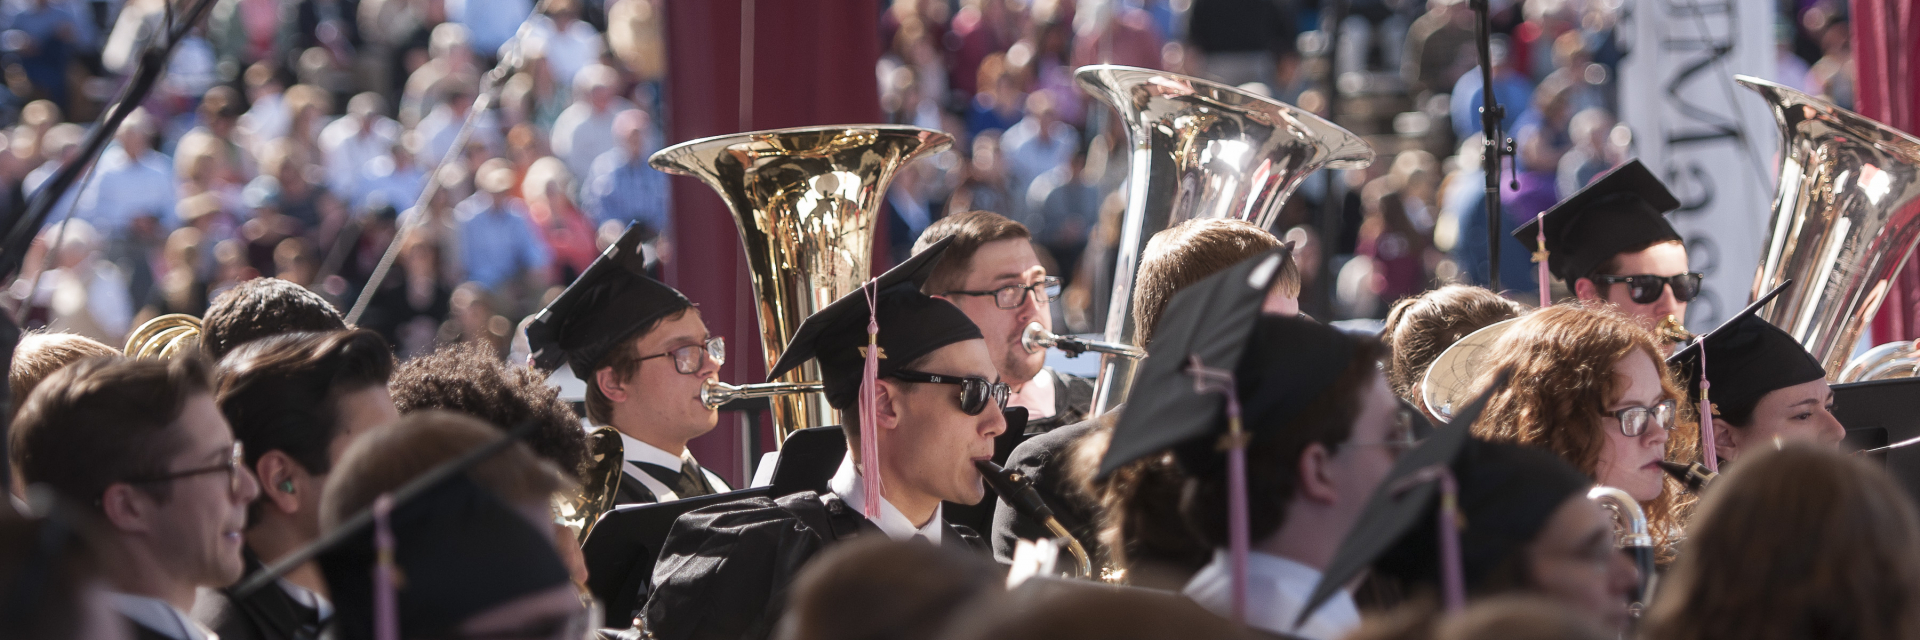 Students playing instruments at UMass Undergraduate Commencement